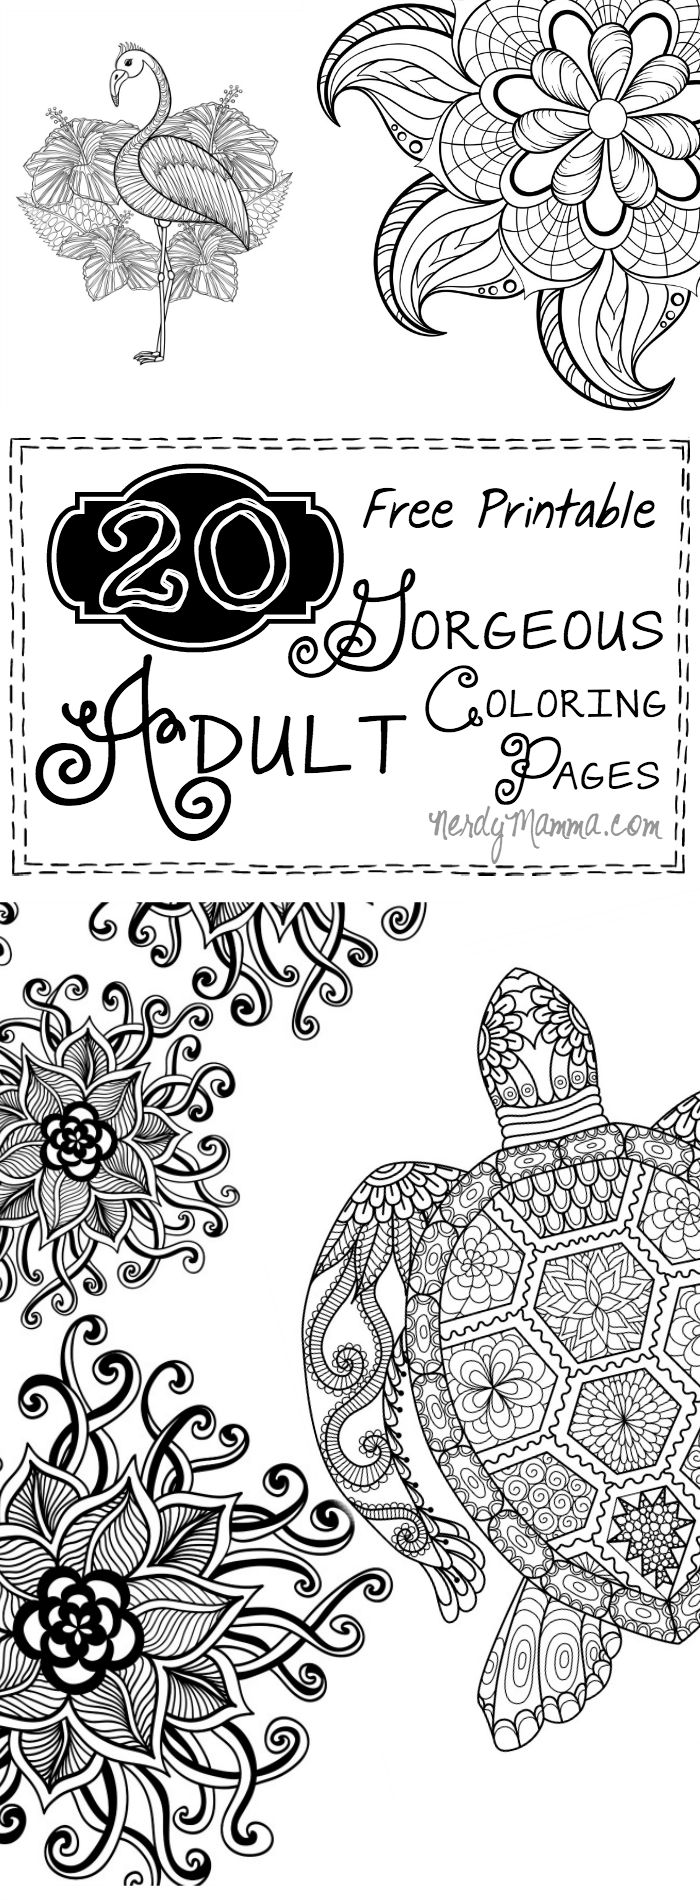 Spring coloring pages for older students - 20 Gorgeous Free Printable Adult Coloring Pages